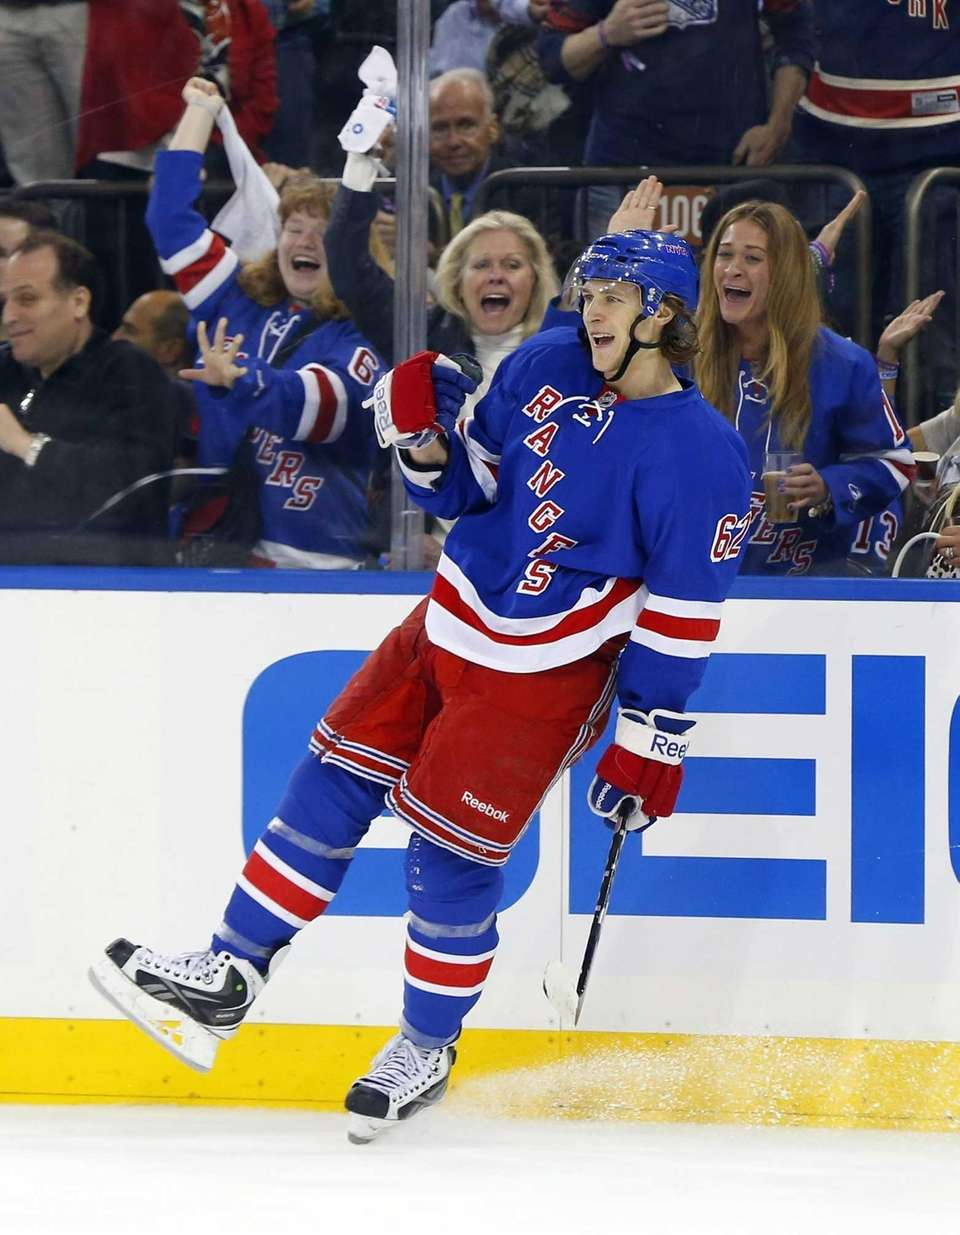 Carl Hagelin of the Rangers celebrates his second